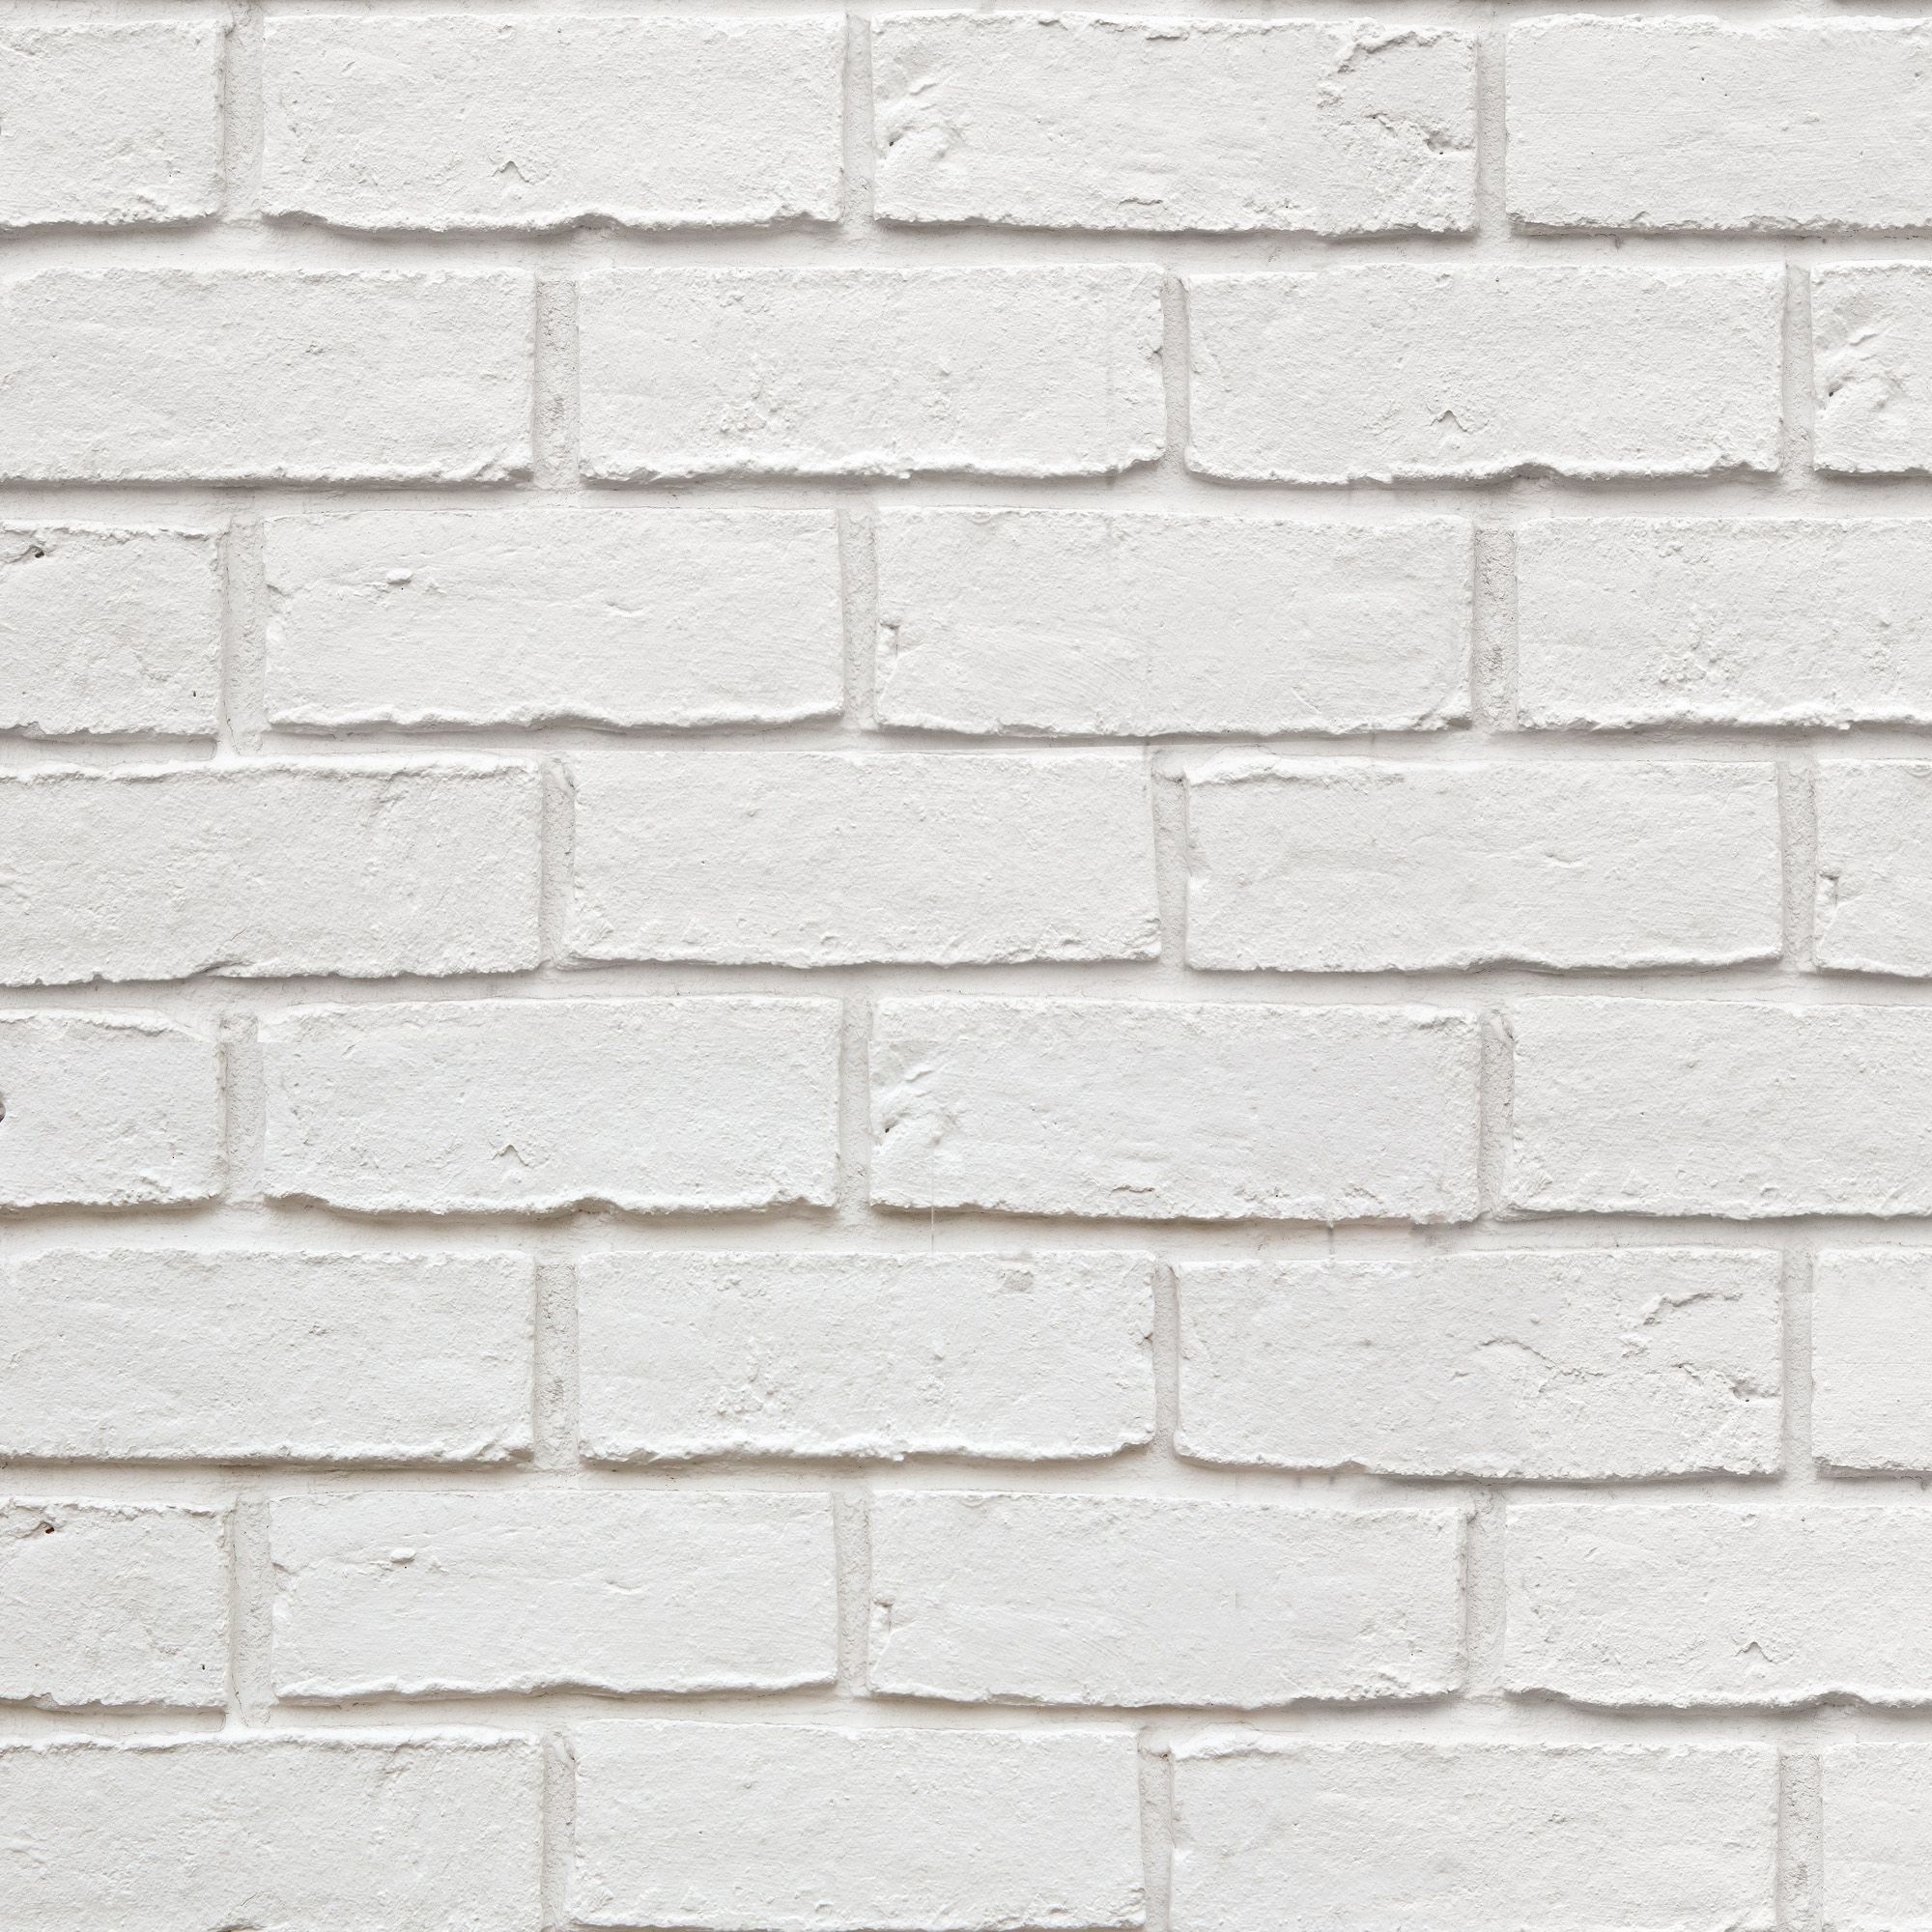 Colours White Brick Effect Wallpaper B Q For All Your Home And Garden Supplies And Advice On All The Brick Effect Wallpaper Faux Walls White Brick Wallpaper